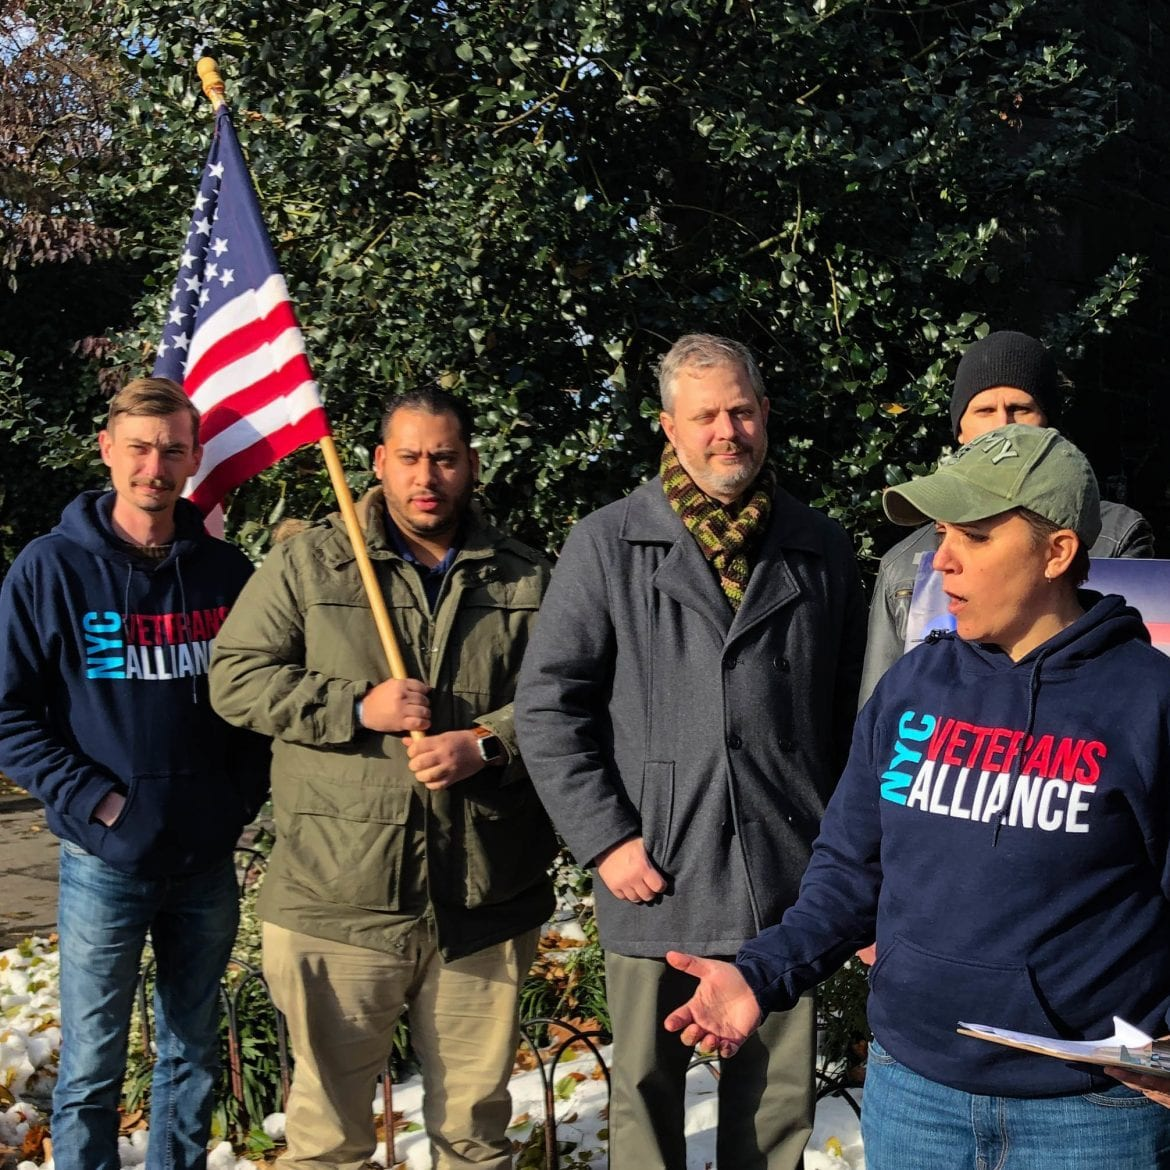 Veterans gather at the site of the 1776 Battle of Fort Washington in Manhattan. They are calling on the VA to rename the Manhattan VA Medical Center in honor of Margaret Corbin, who took her husband's place during the battle after he was killed.